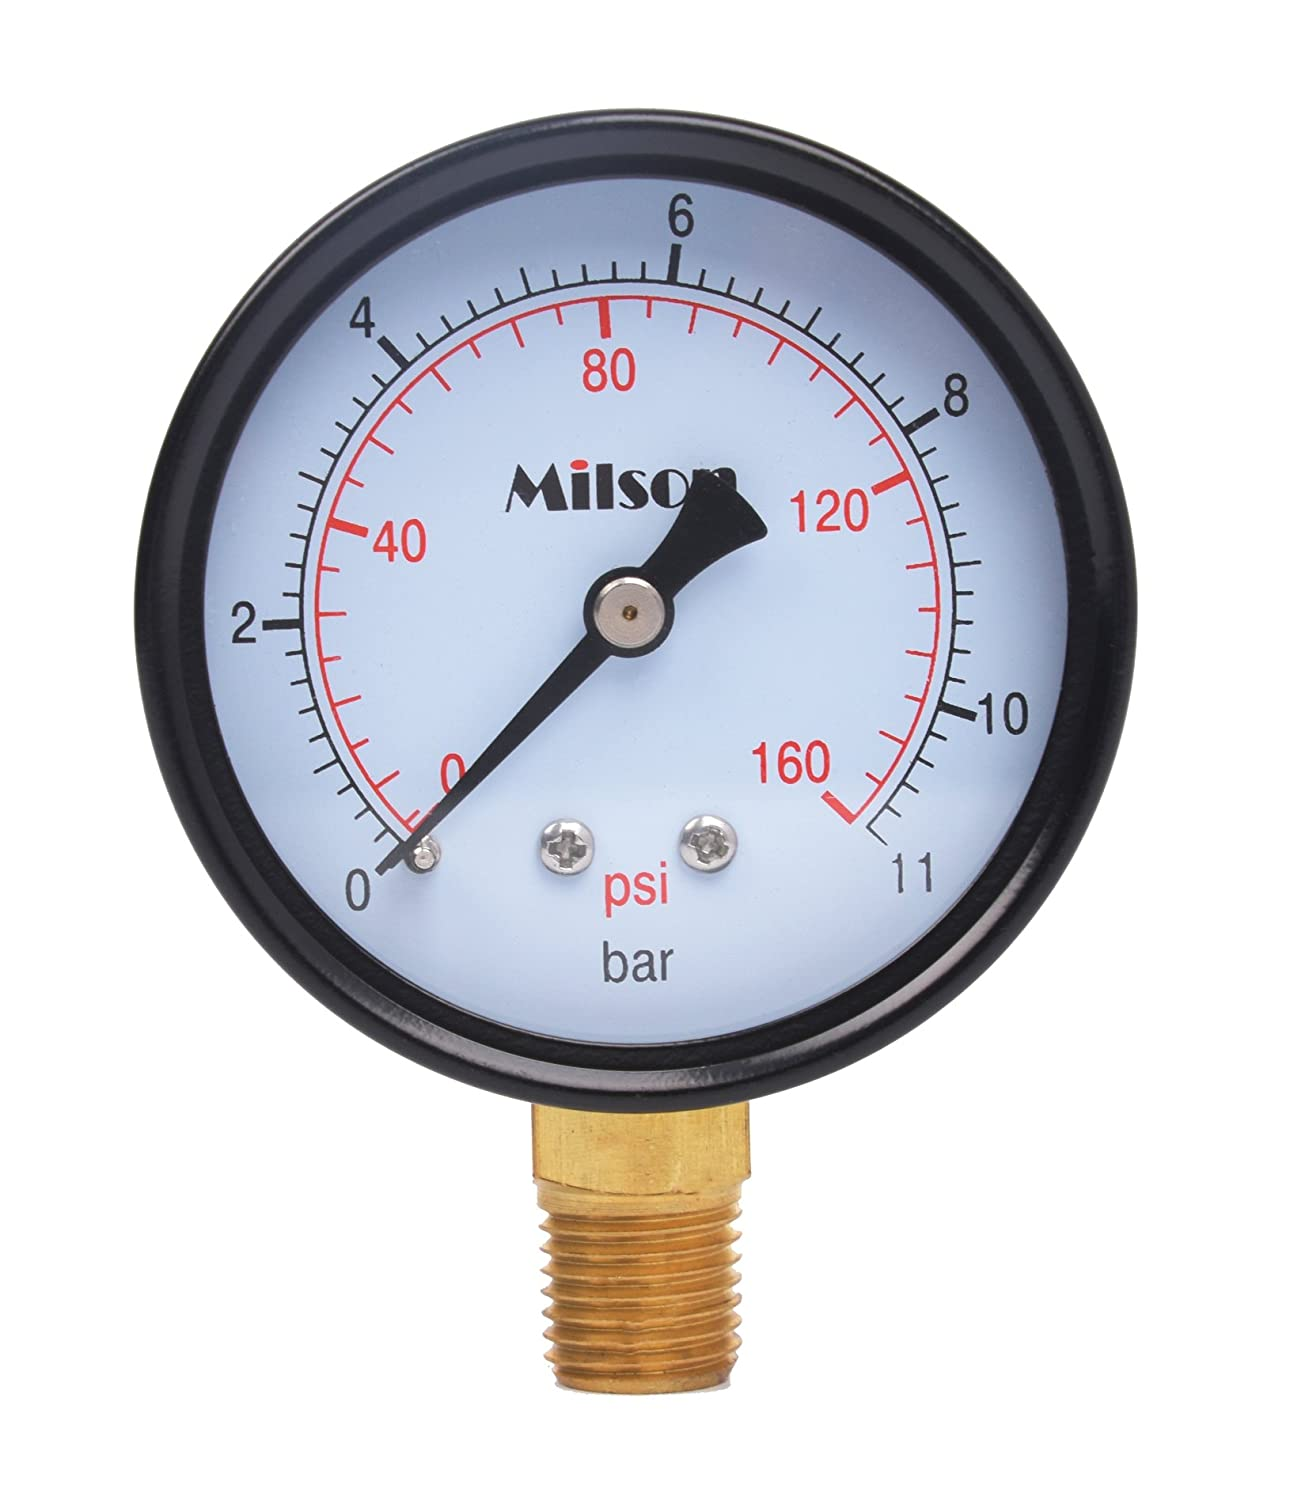 Milson Pressure Gauge 2.5 Black Steel Case Bottom Mount 1 4NPT 0 160 Psi Bar Accuracy 2.0 Brass Internal Multiple Function